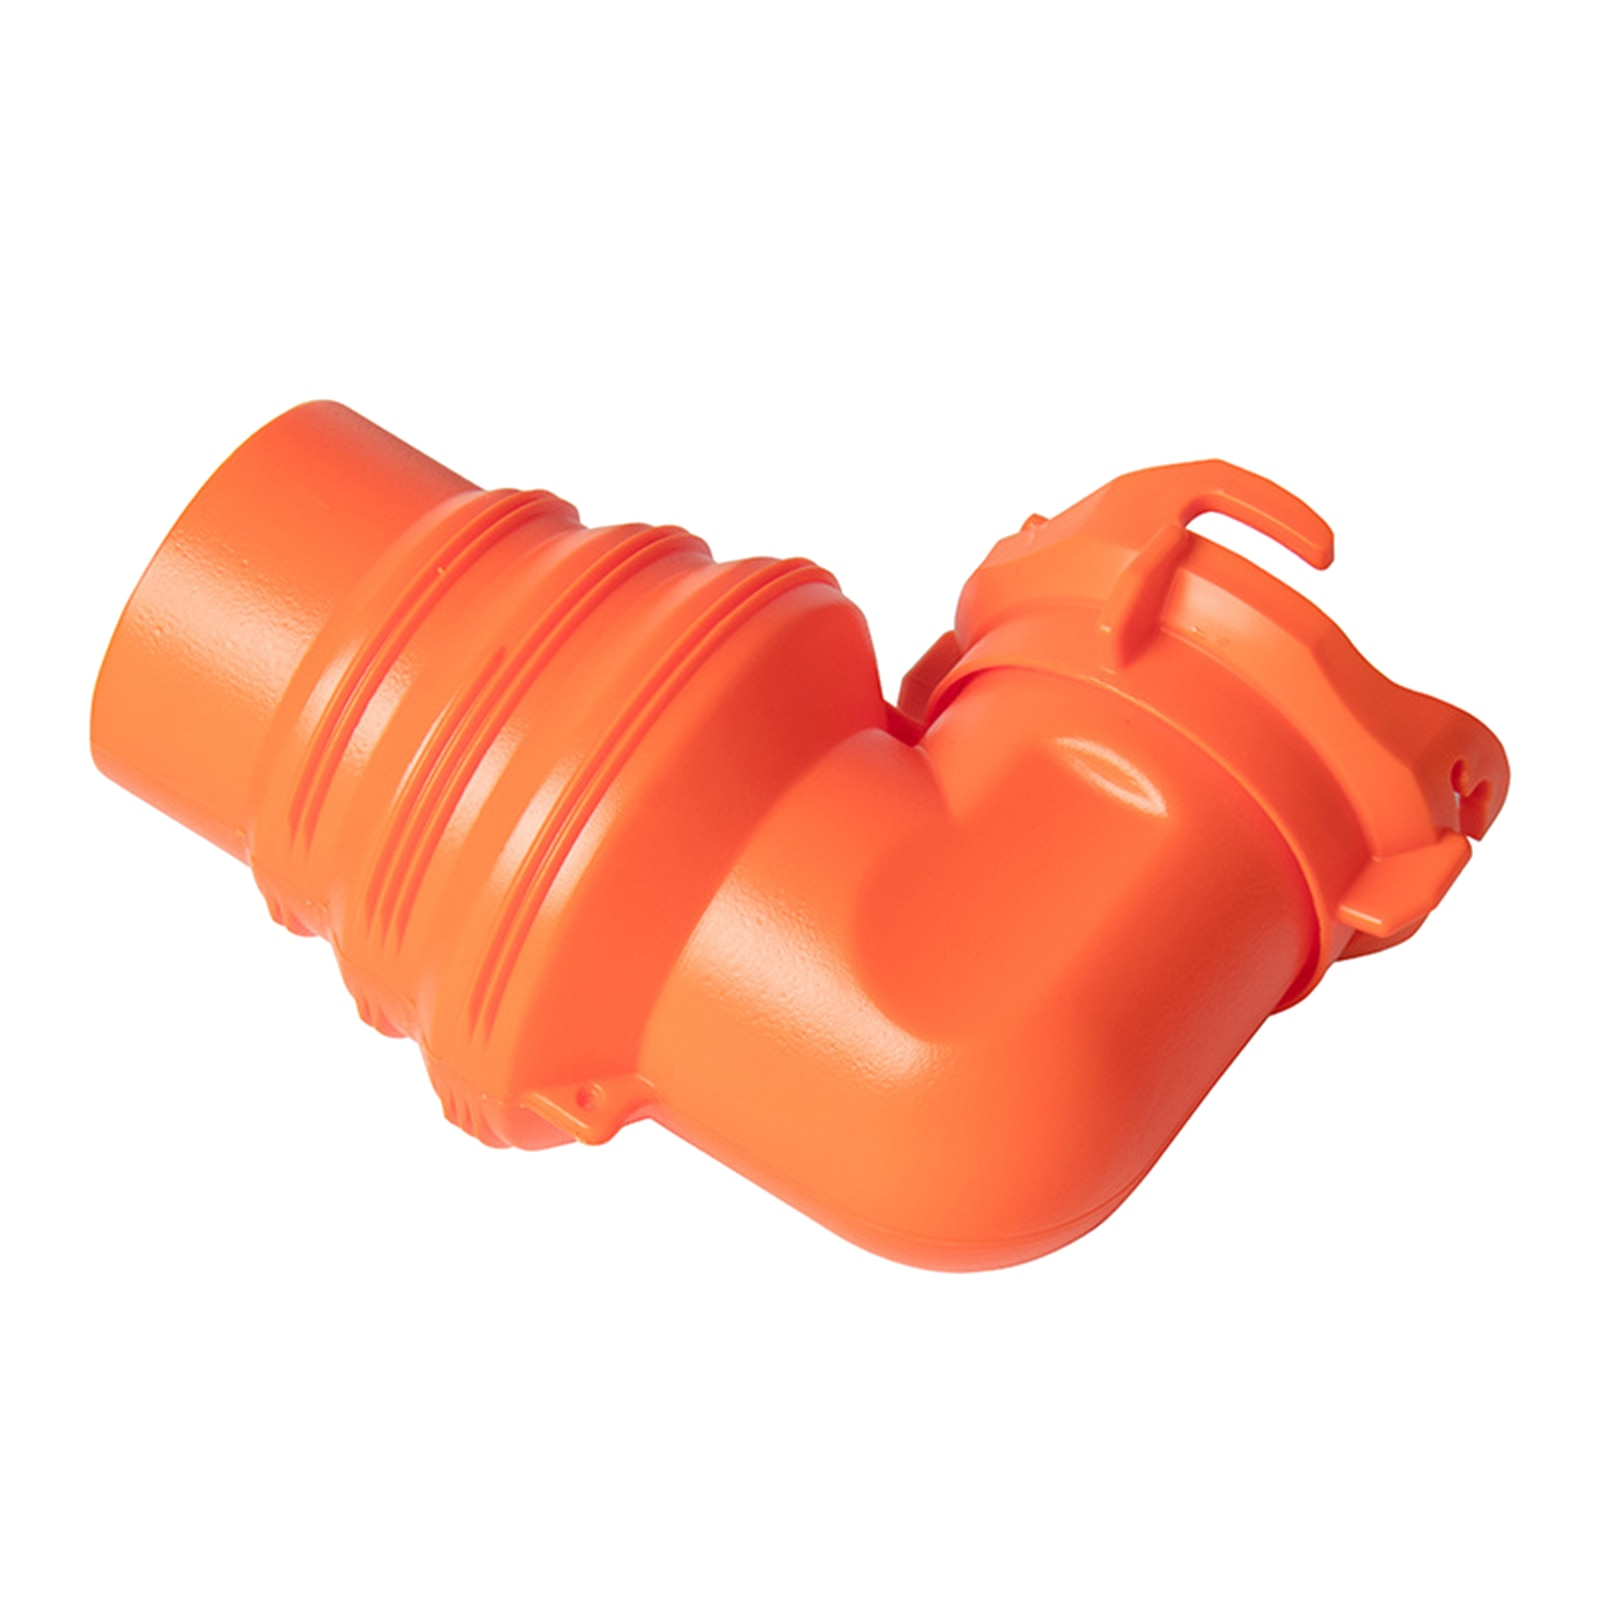 1Pcs 90 Degree Sewer Hose Swivel Elbow Fitting Adapter for RV Waste Tanks